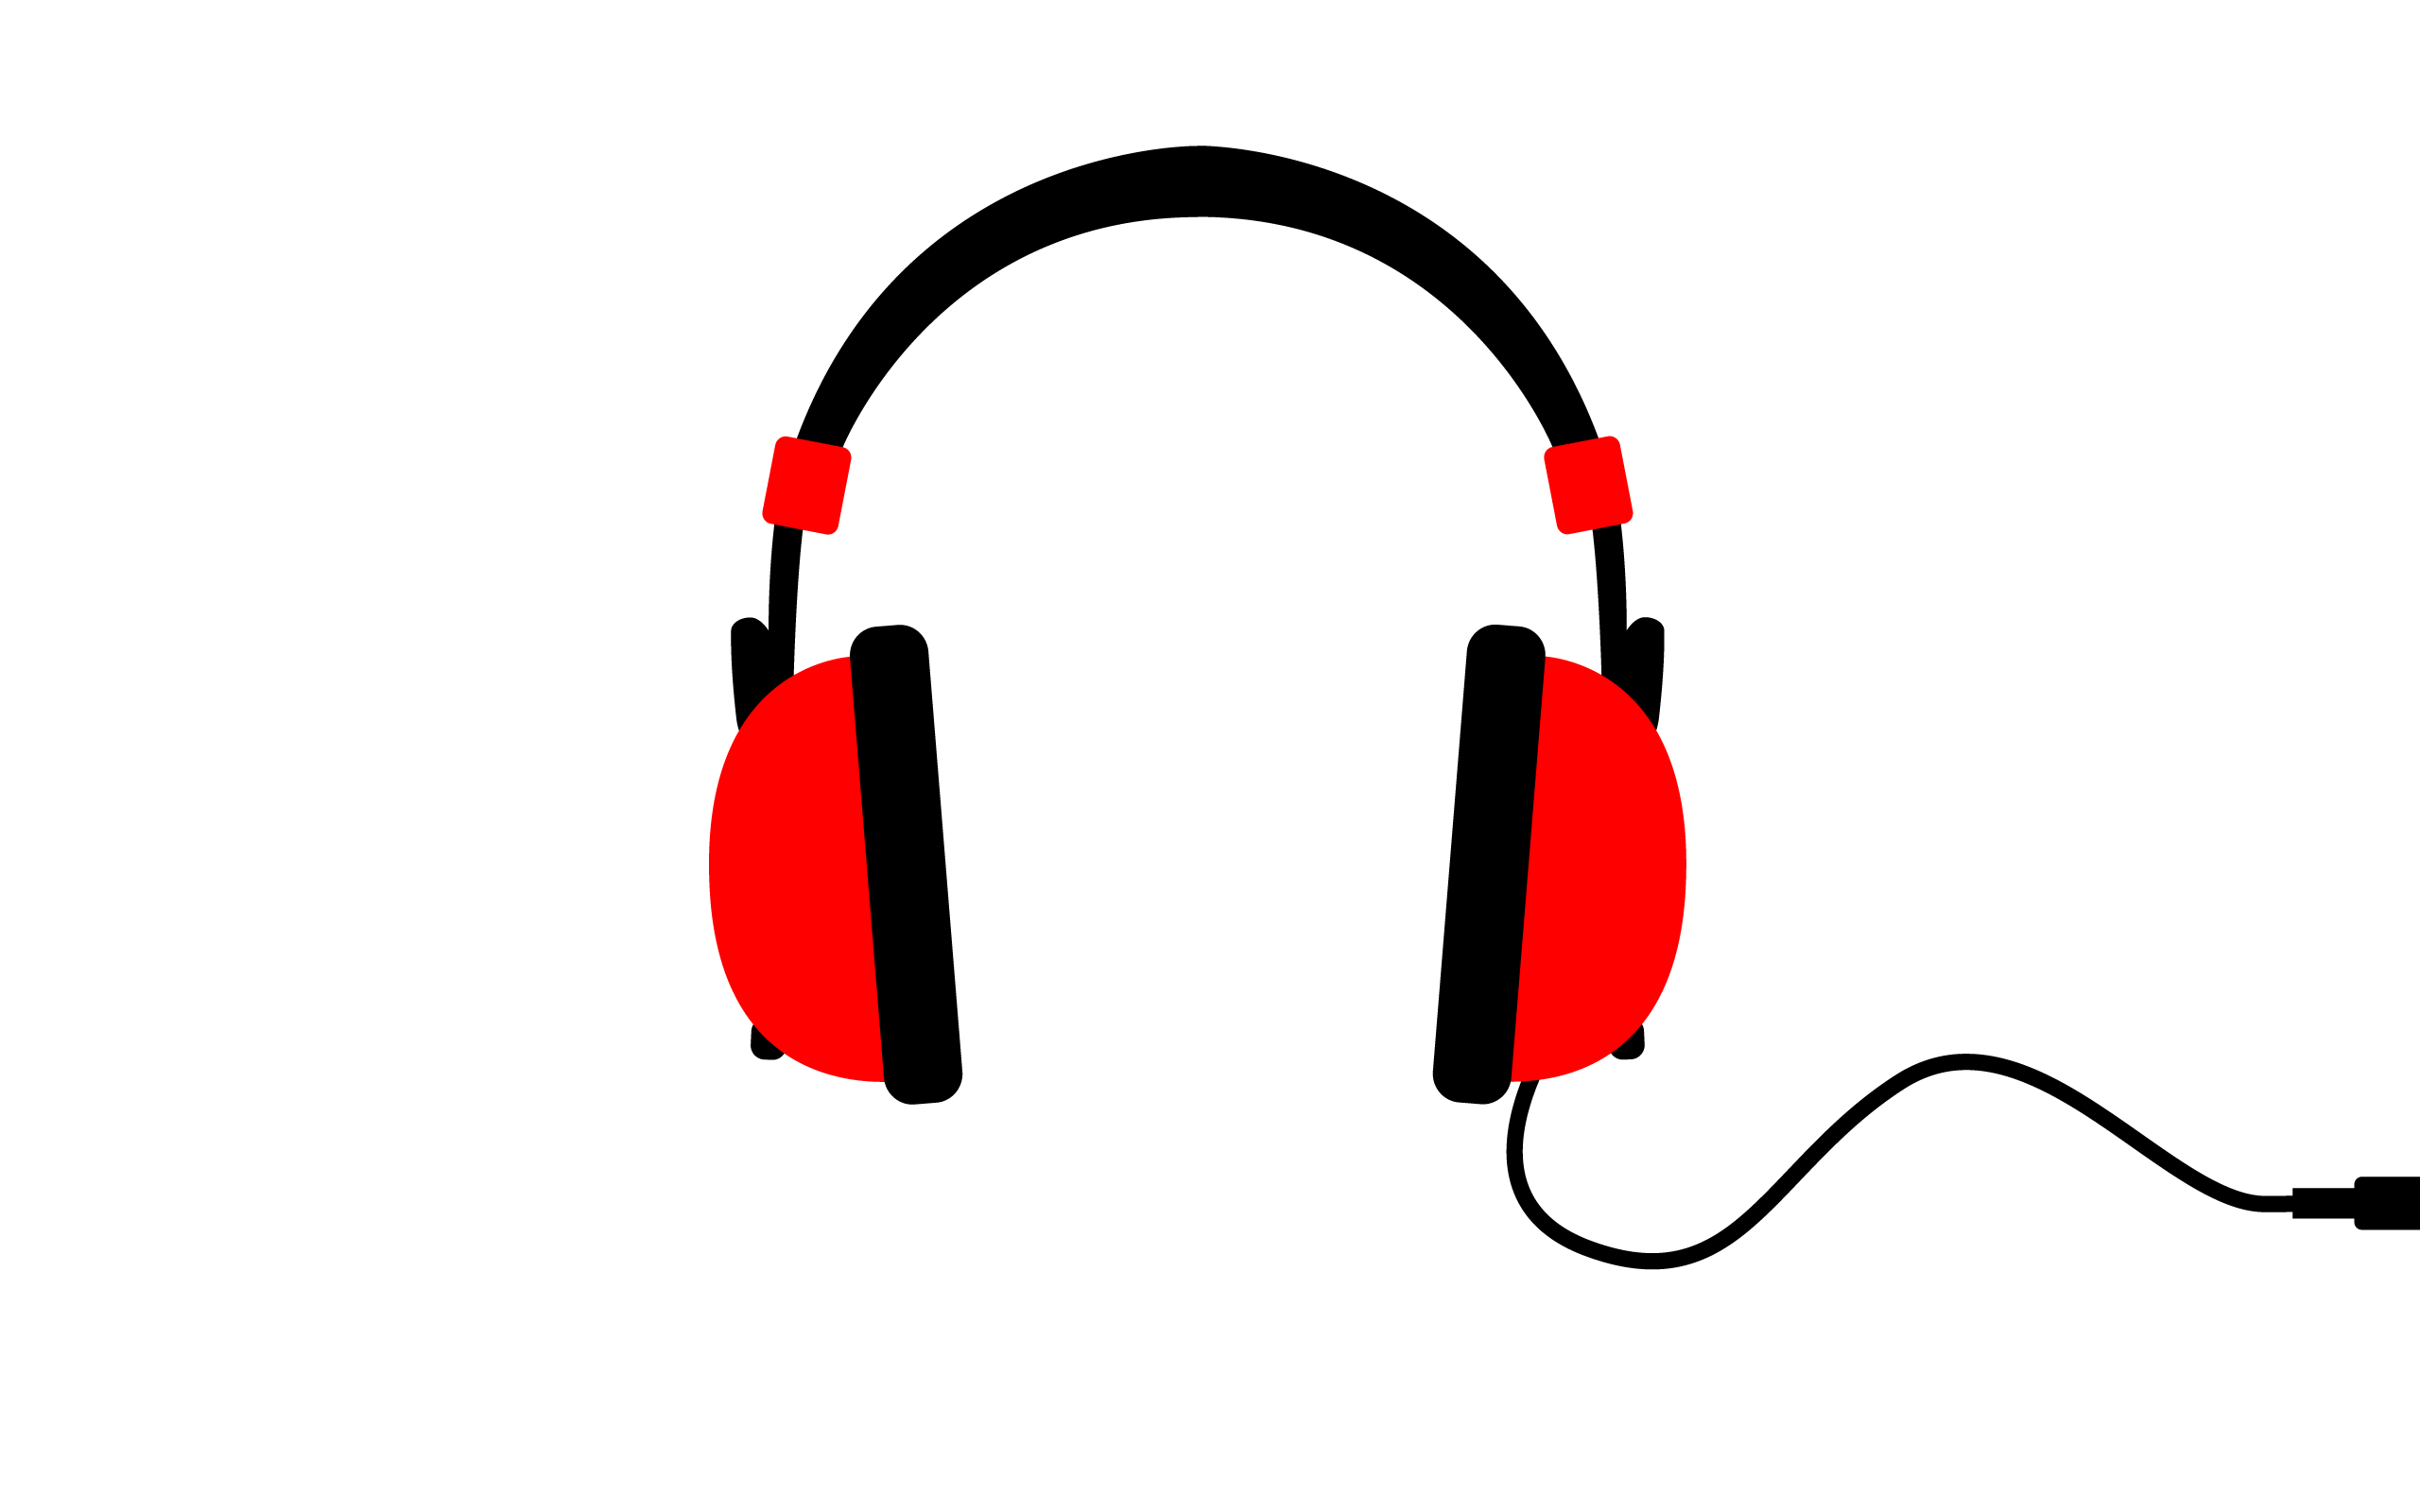 Headphone clipart podcast Few A of podcasts list